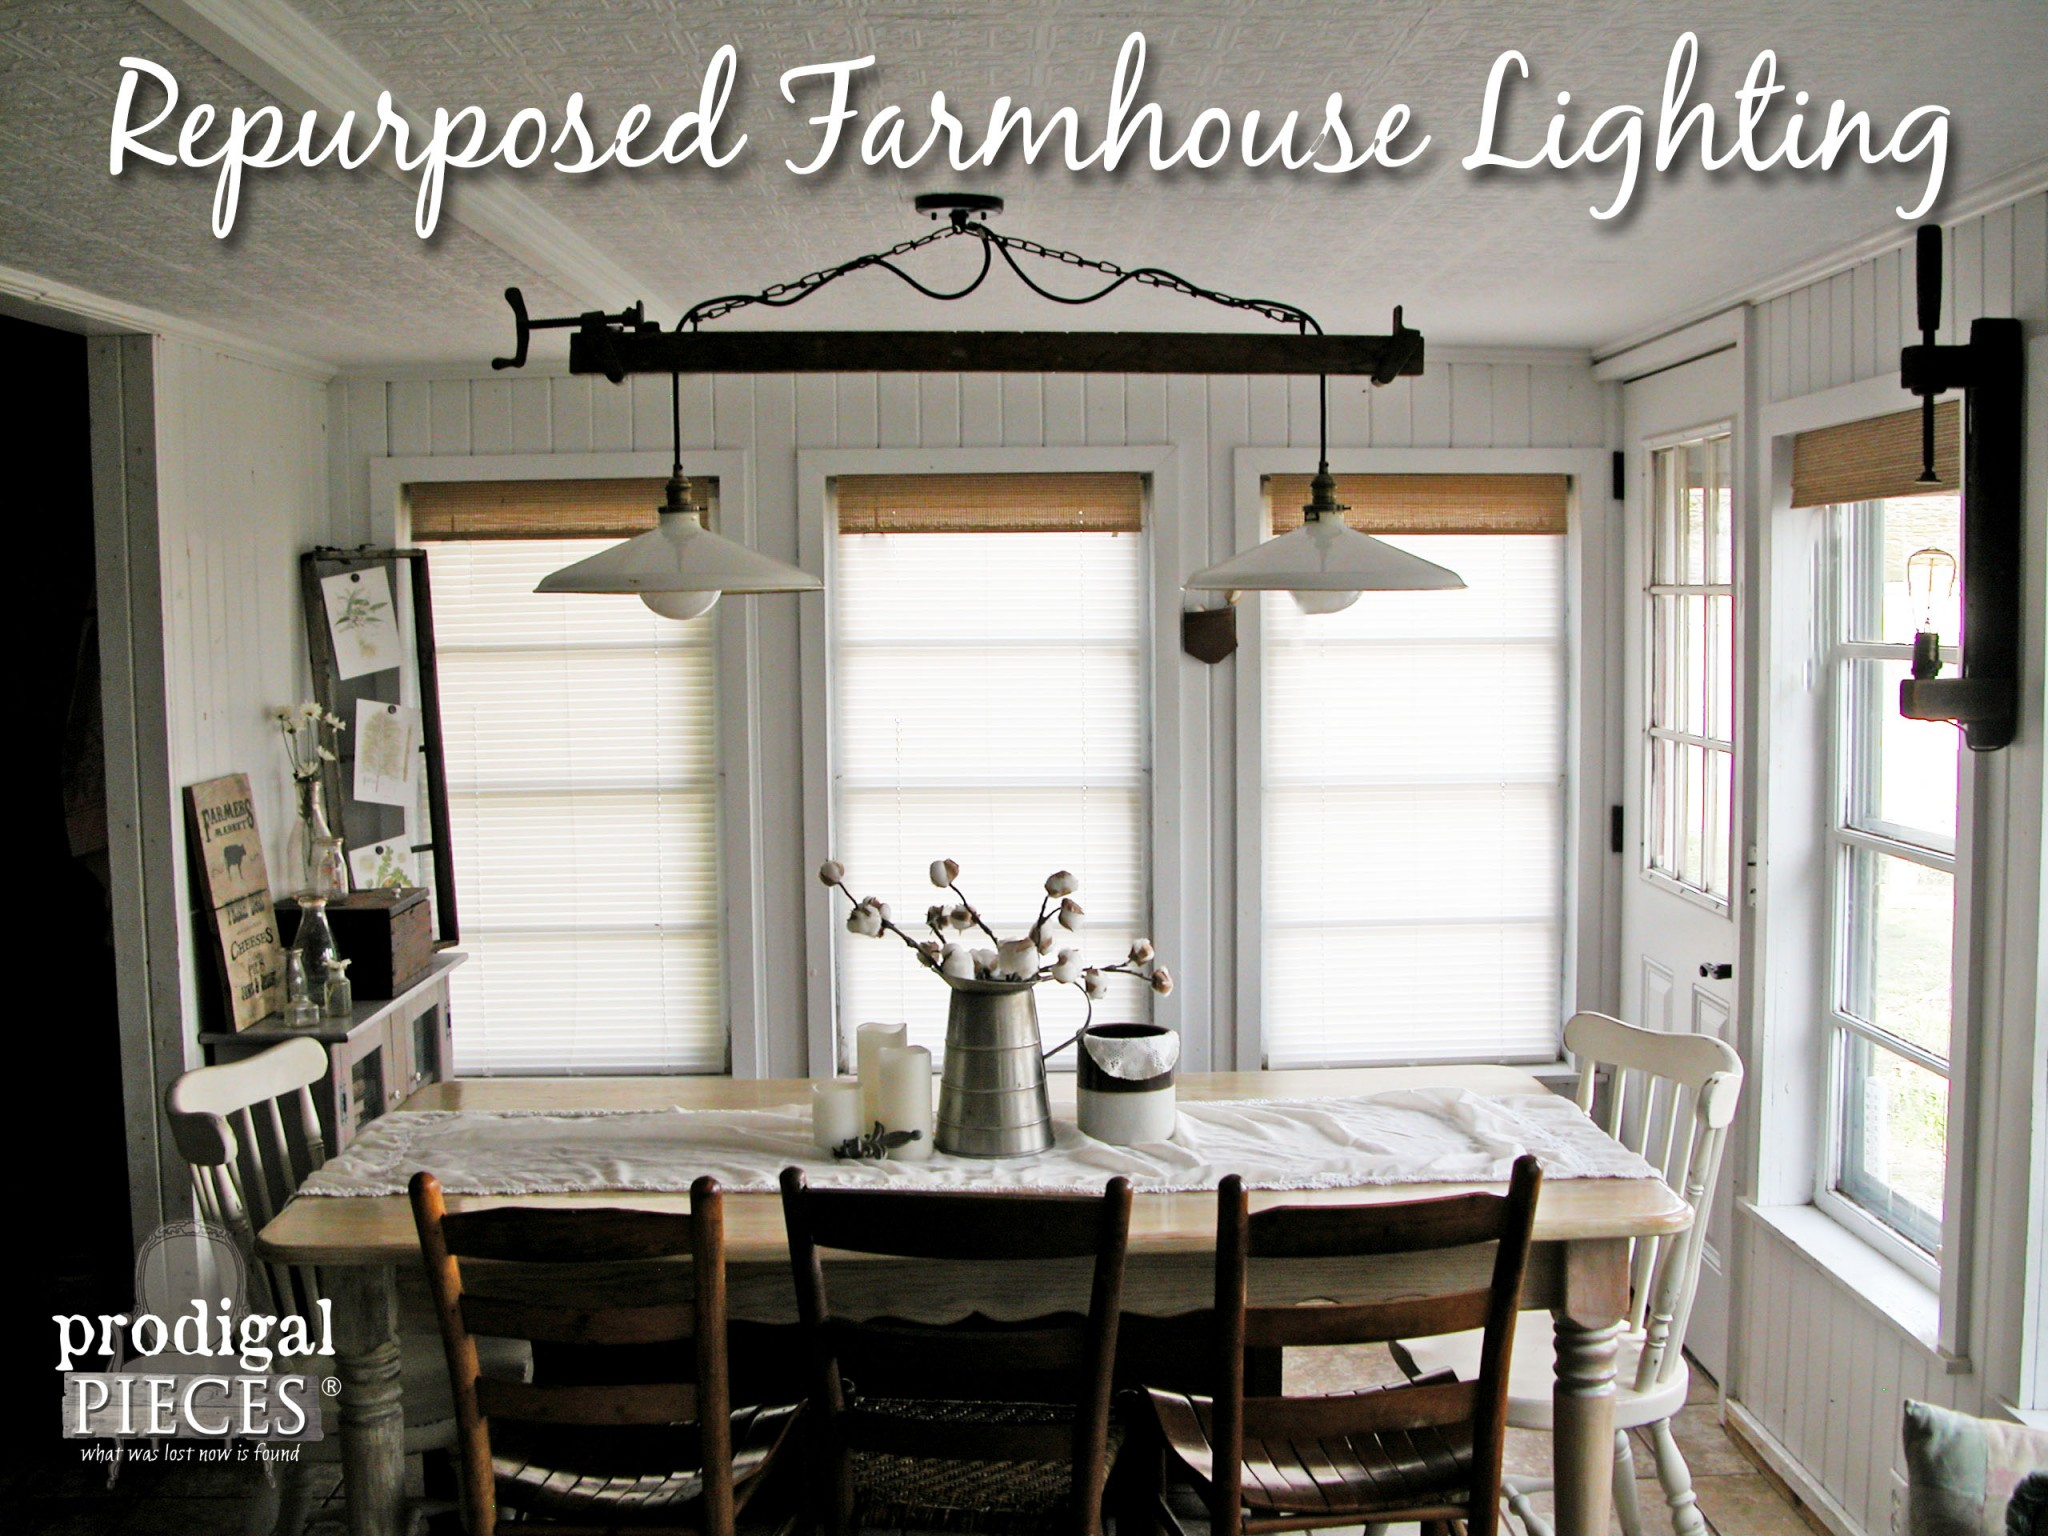 Create Your Own Farmhouse Lighting With This Step By DIY Tutorial Prodigal